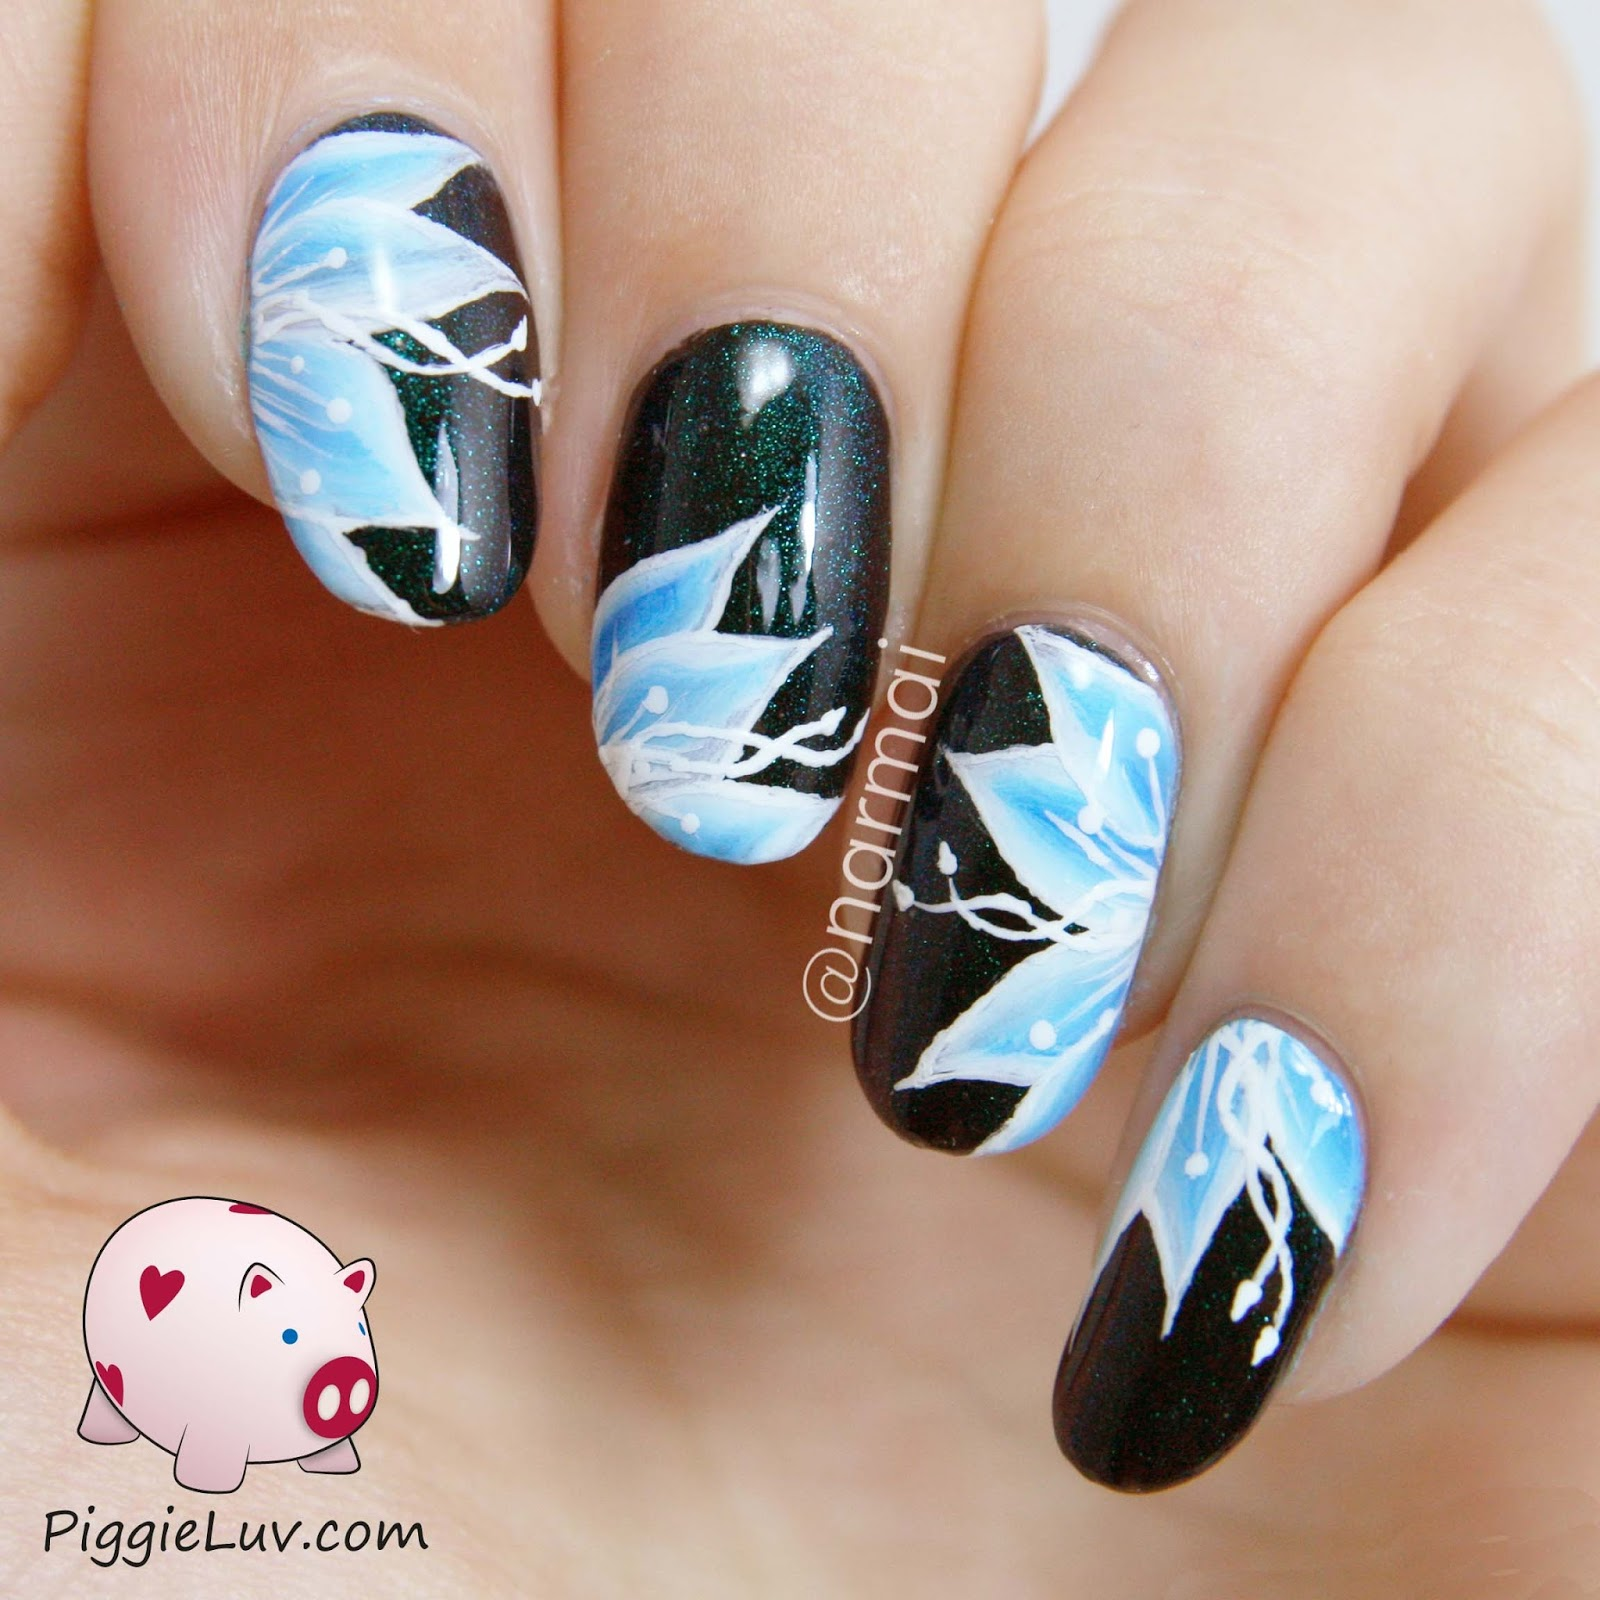 Let Me Hit You With Some More One Stroke Flowers Are Sick Of Them Yet I Used Girly Bits Cosmic Ocean Over Black As The Base For This Nail Art